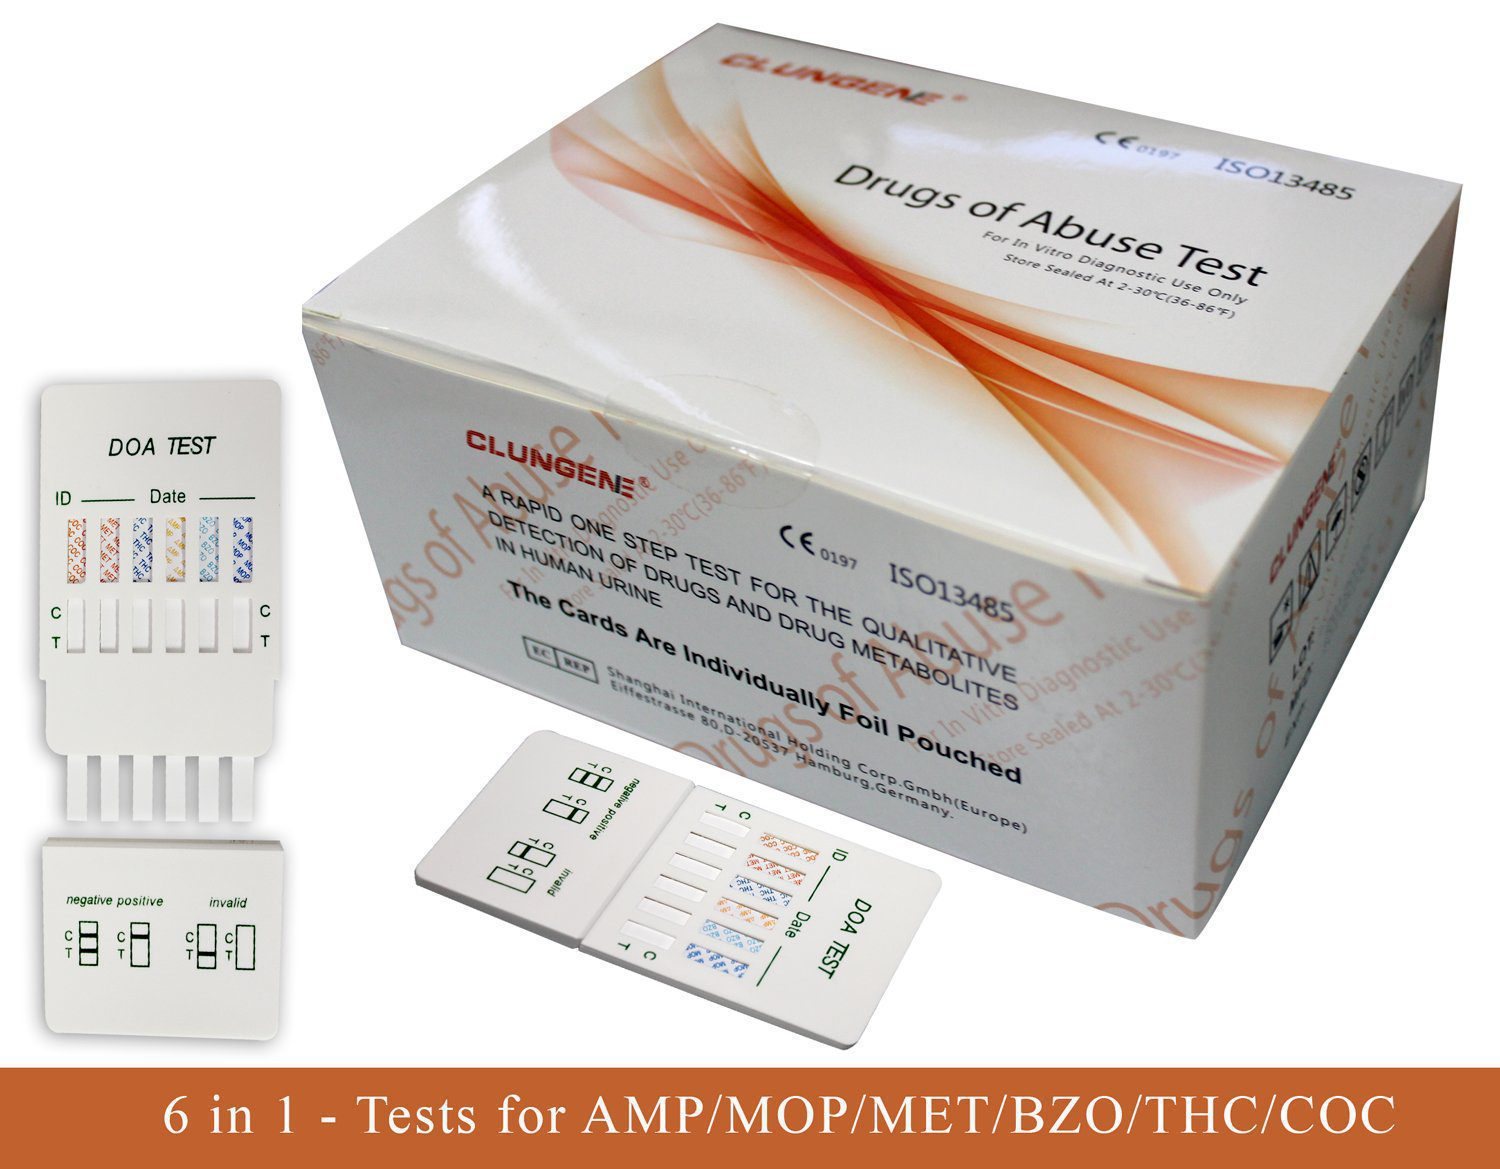 6 In 1 Drug Test Kit  (AMP / MOR / MET / BZO / THC / COC)